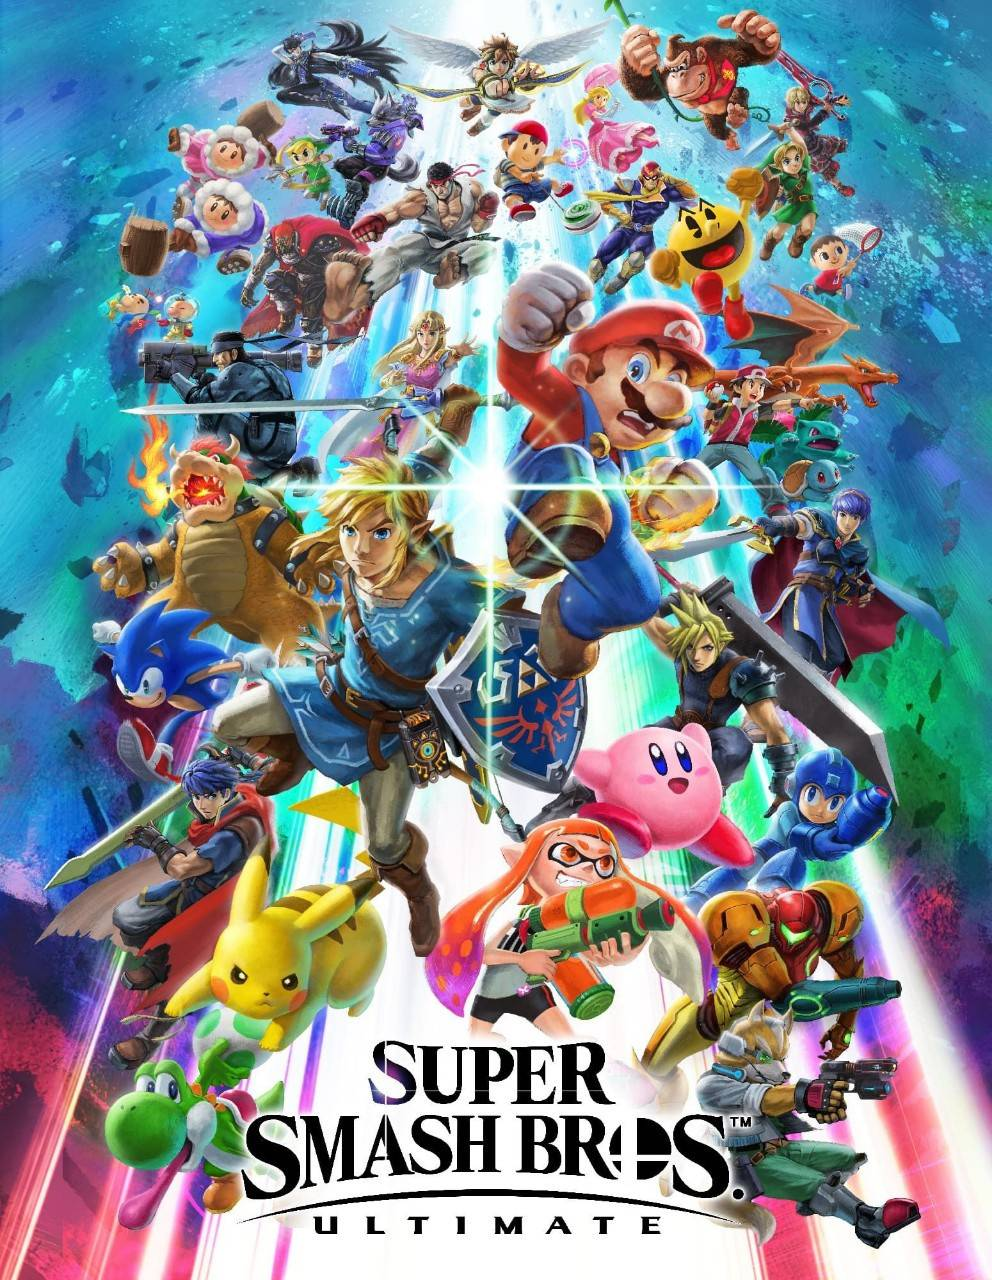 Super Smash Bros 4 Wallpaper By Bugseed 90 Free On Zedge